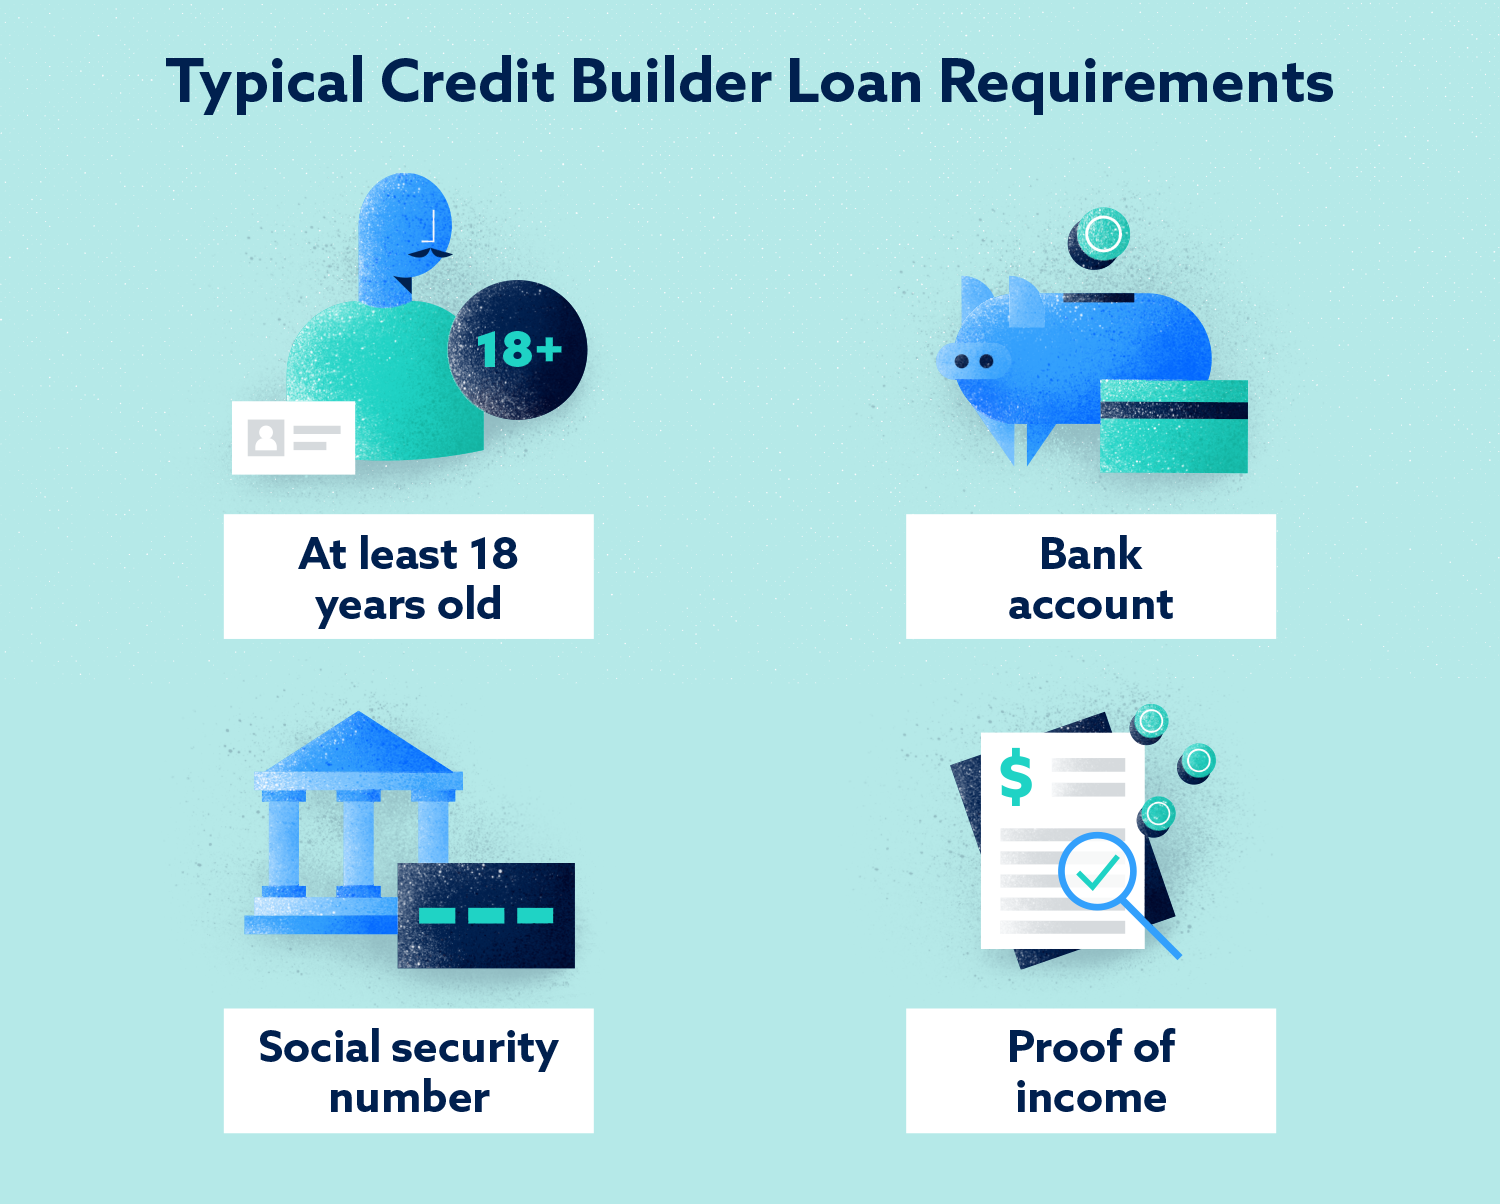 Typical Credit Builder Loan Requirements image